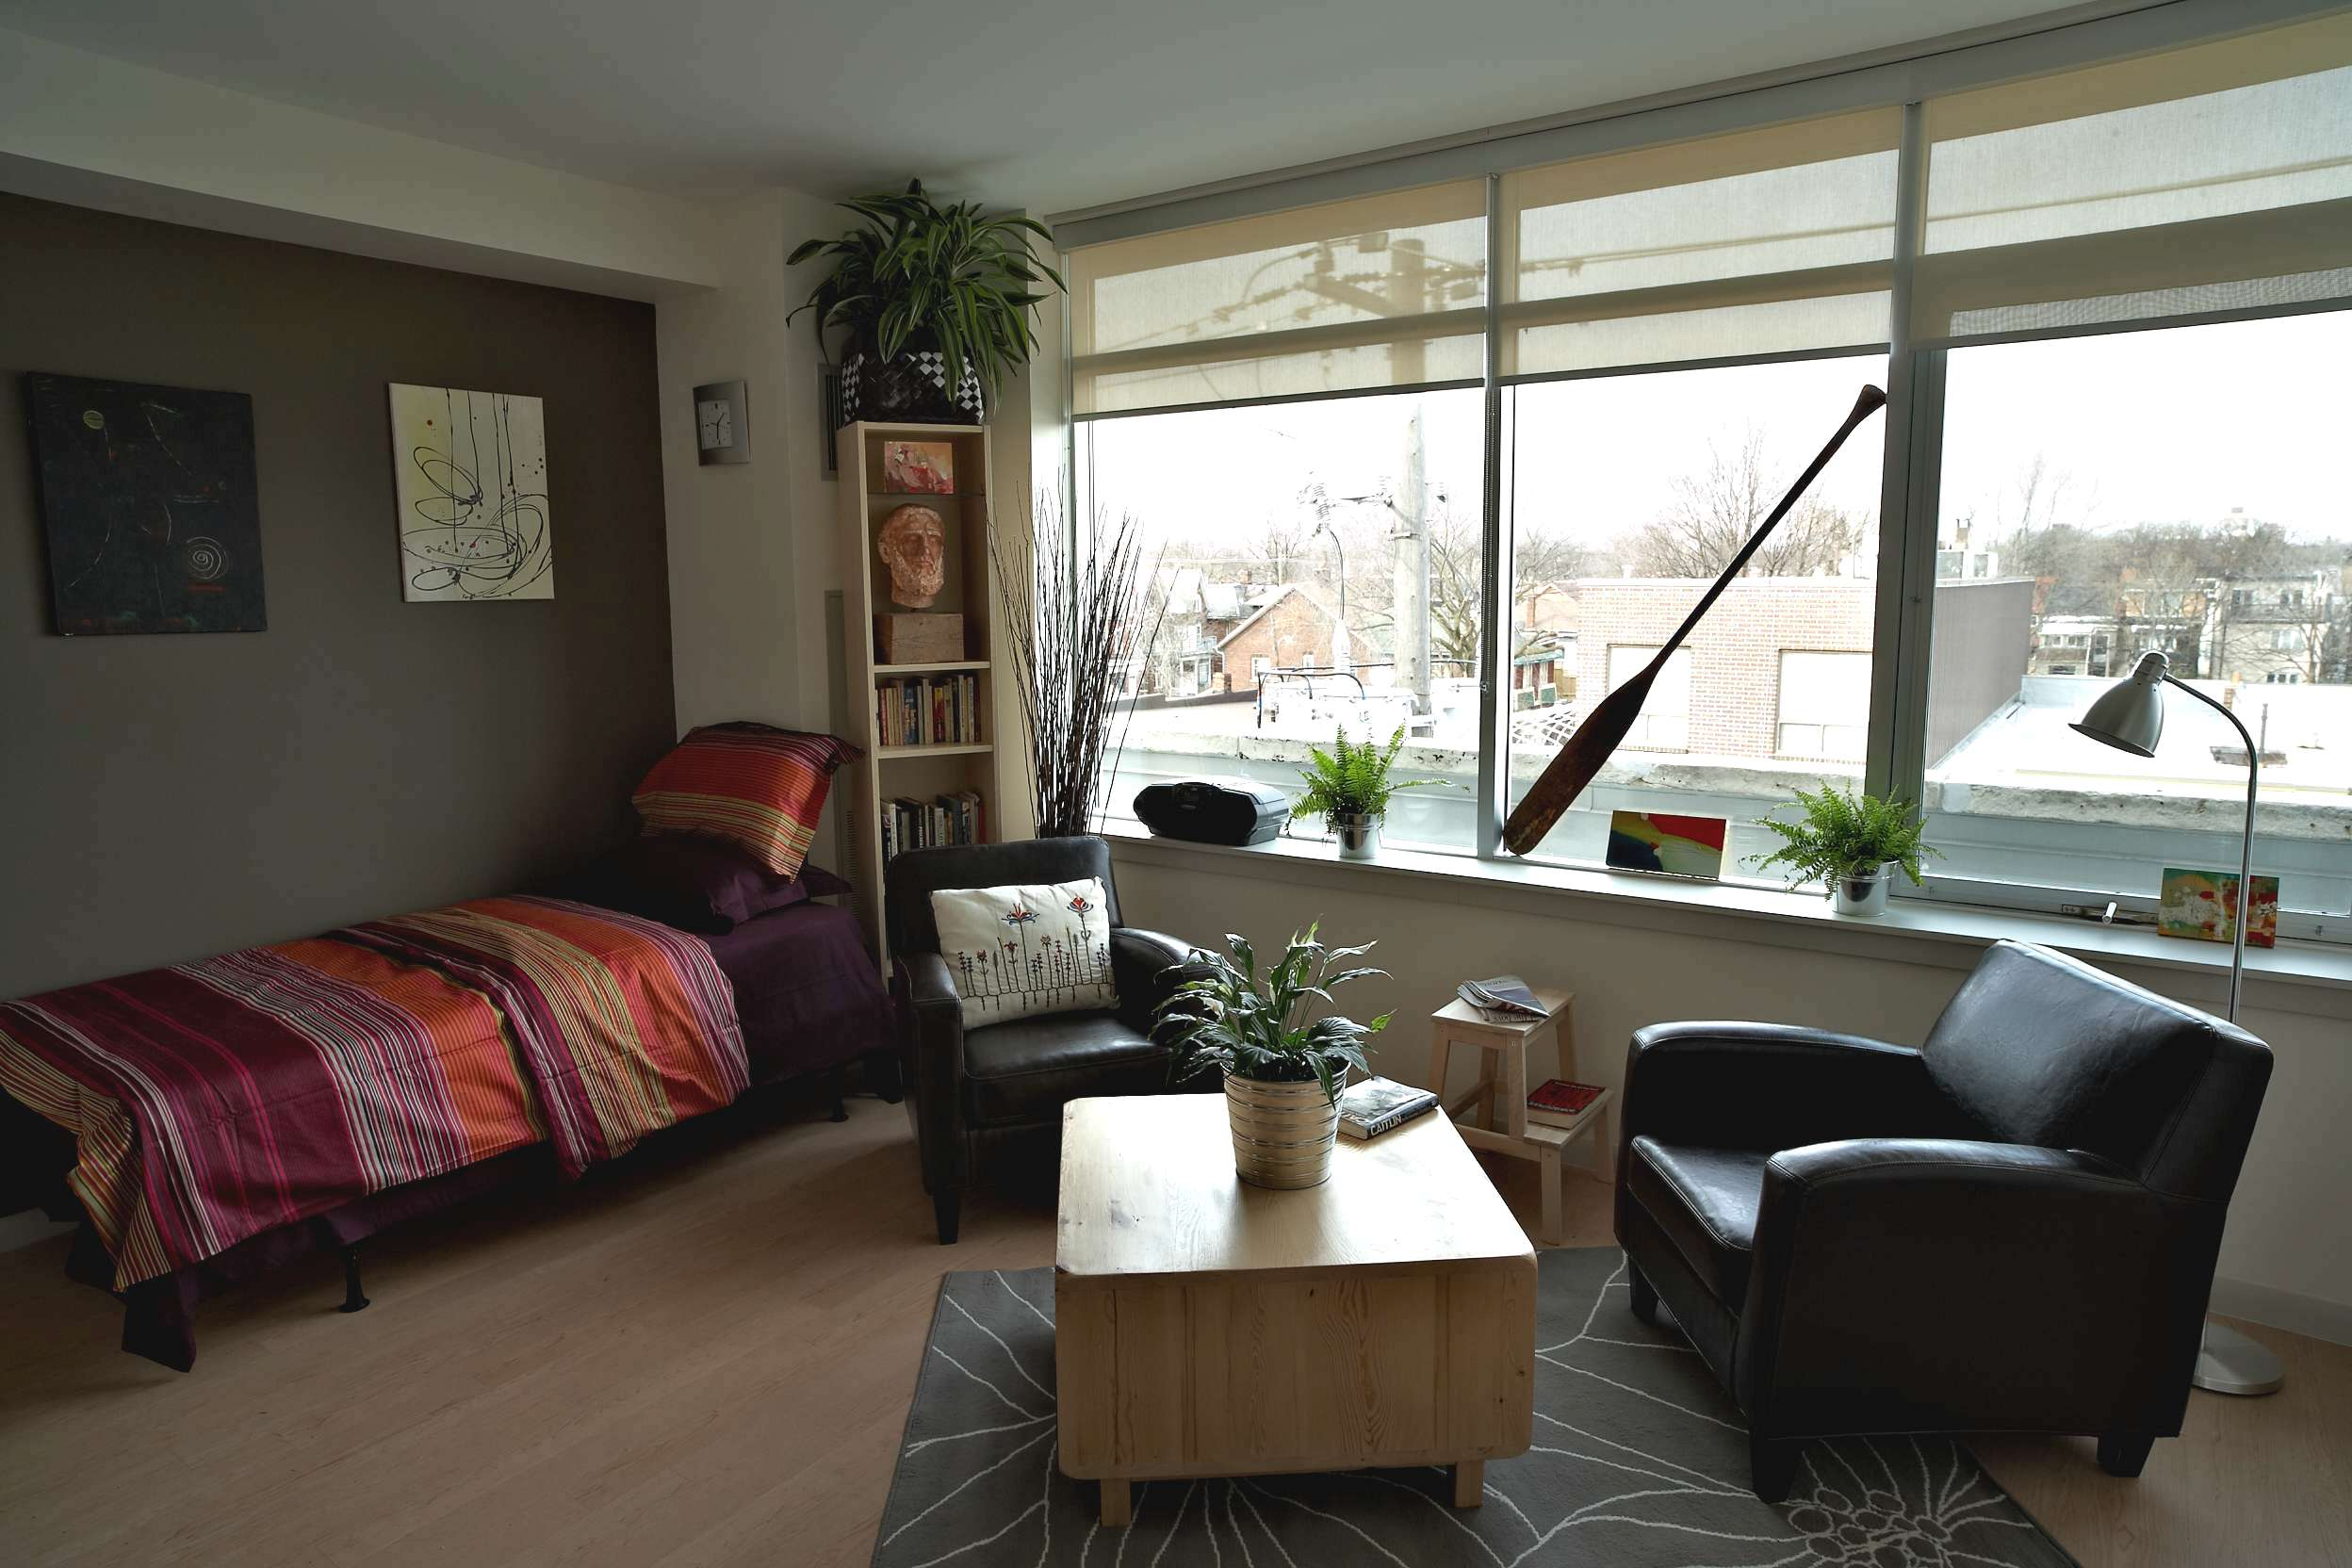 Interior view of apartment in Edmond Place showing bed and living area. This looks like a nice place to live.